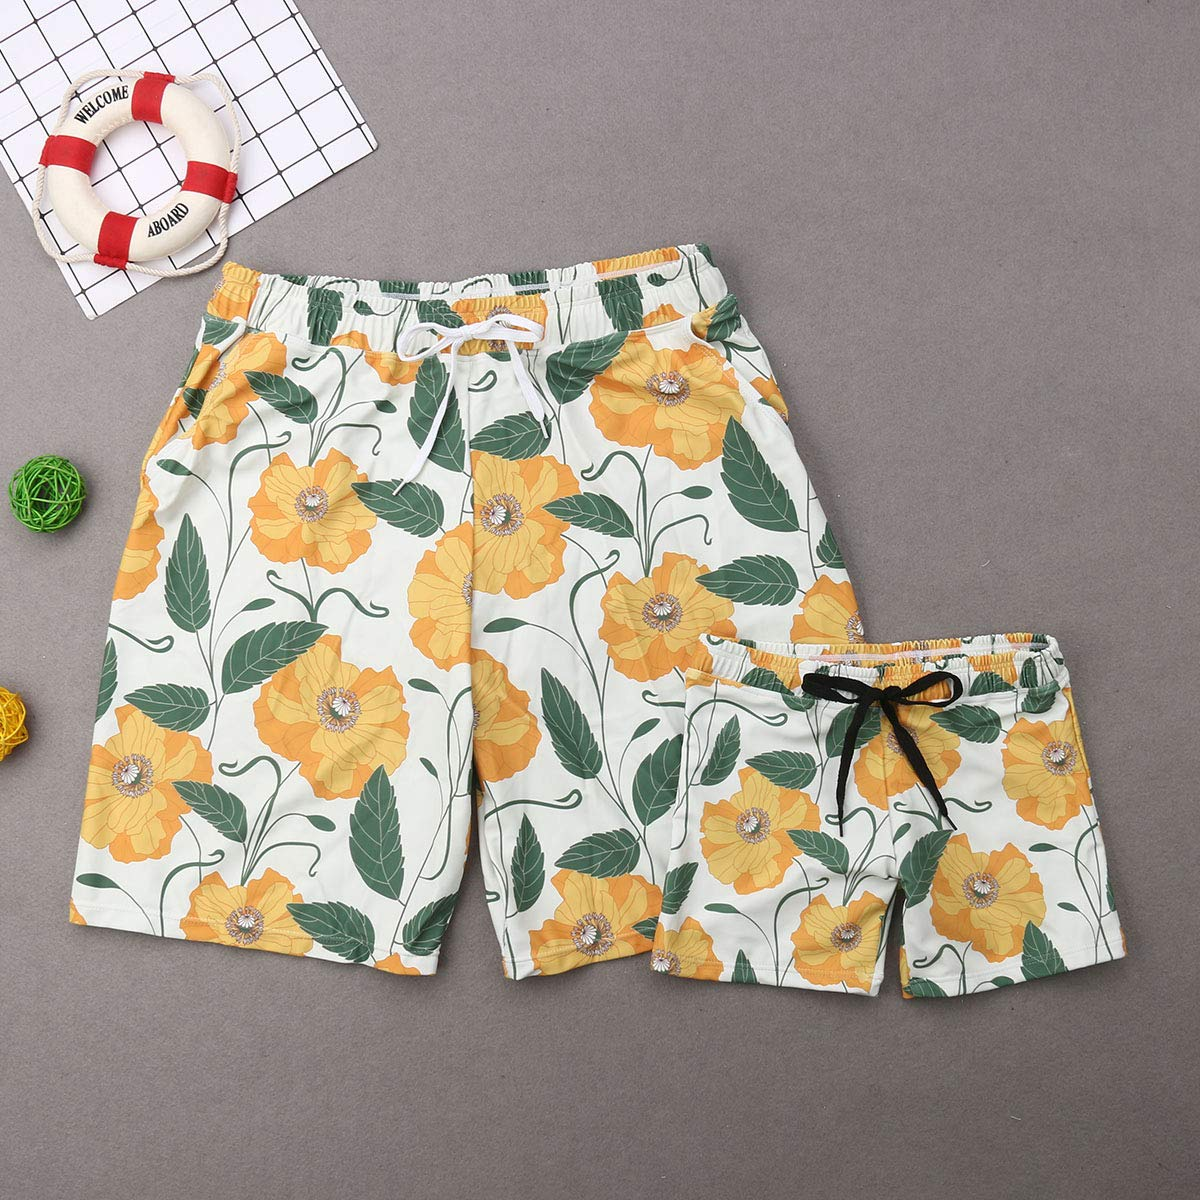 AMILIEe Family Matching Halter Swimwear Mommy Daddy and Me Two Pieces Fruit Floral Print 2019 Bathing Suit